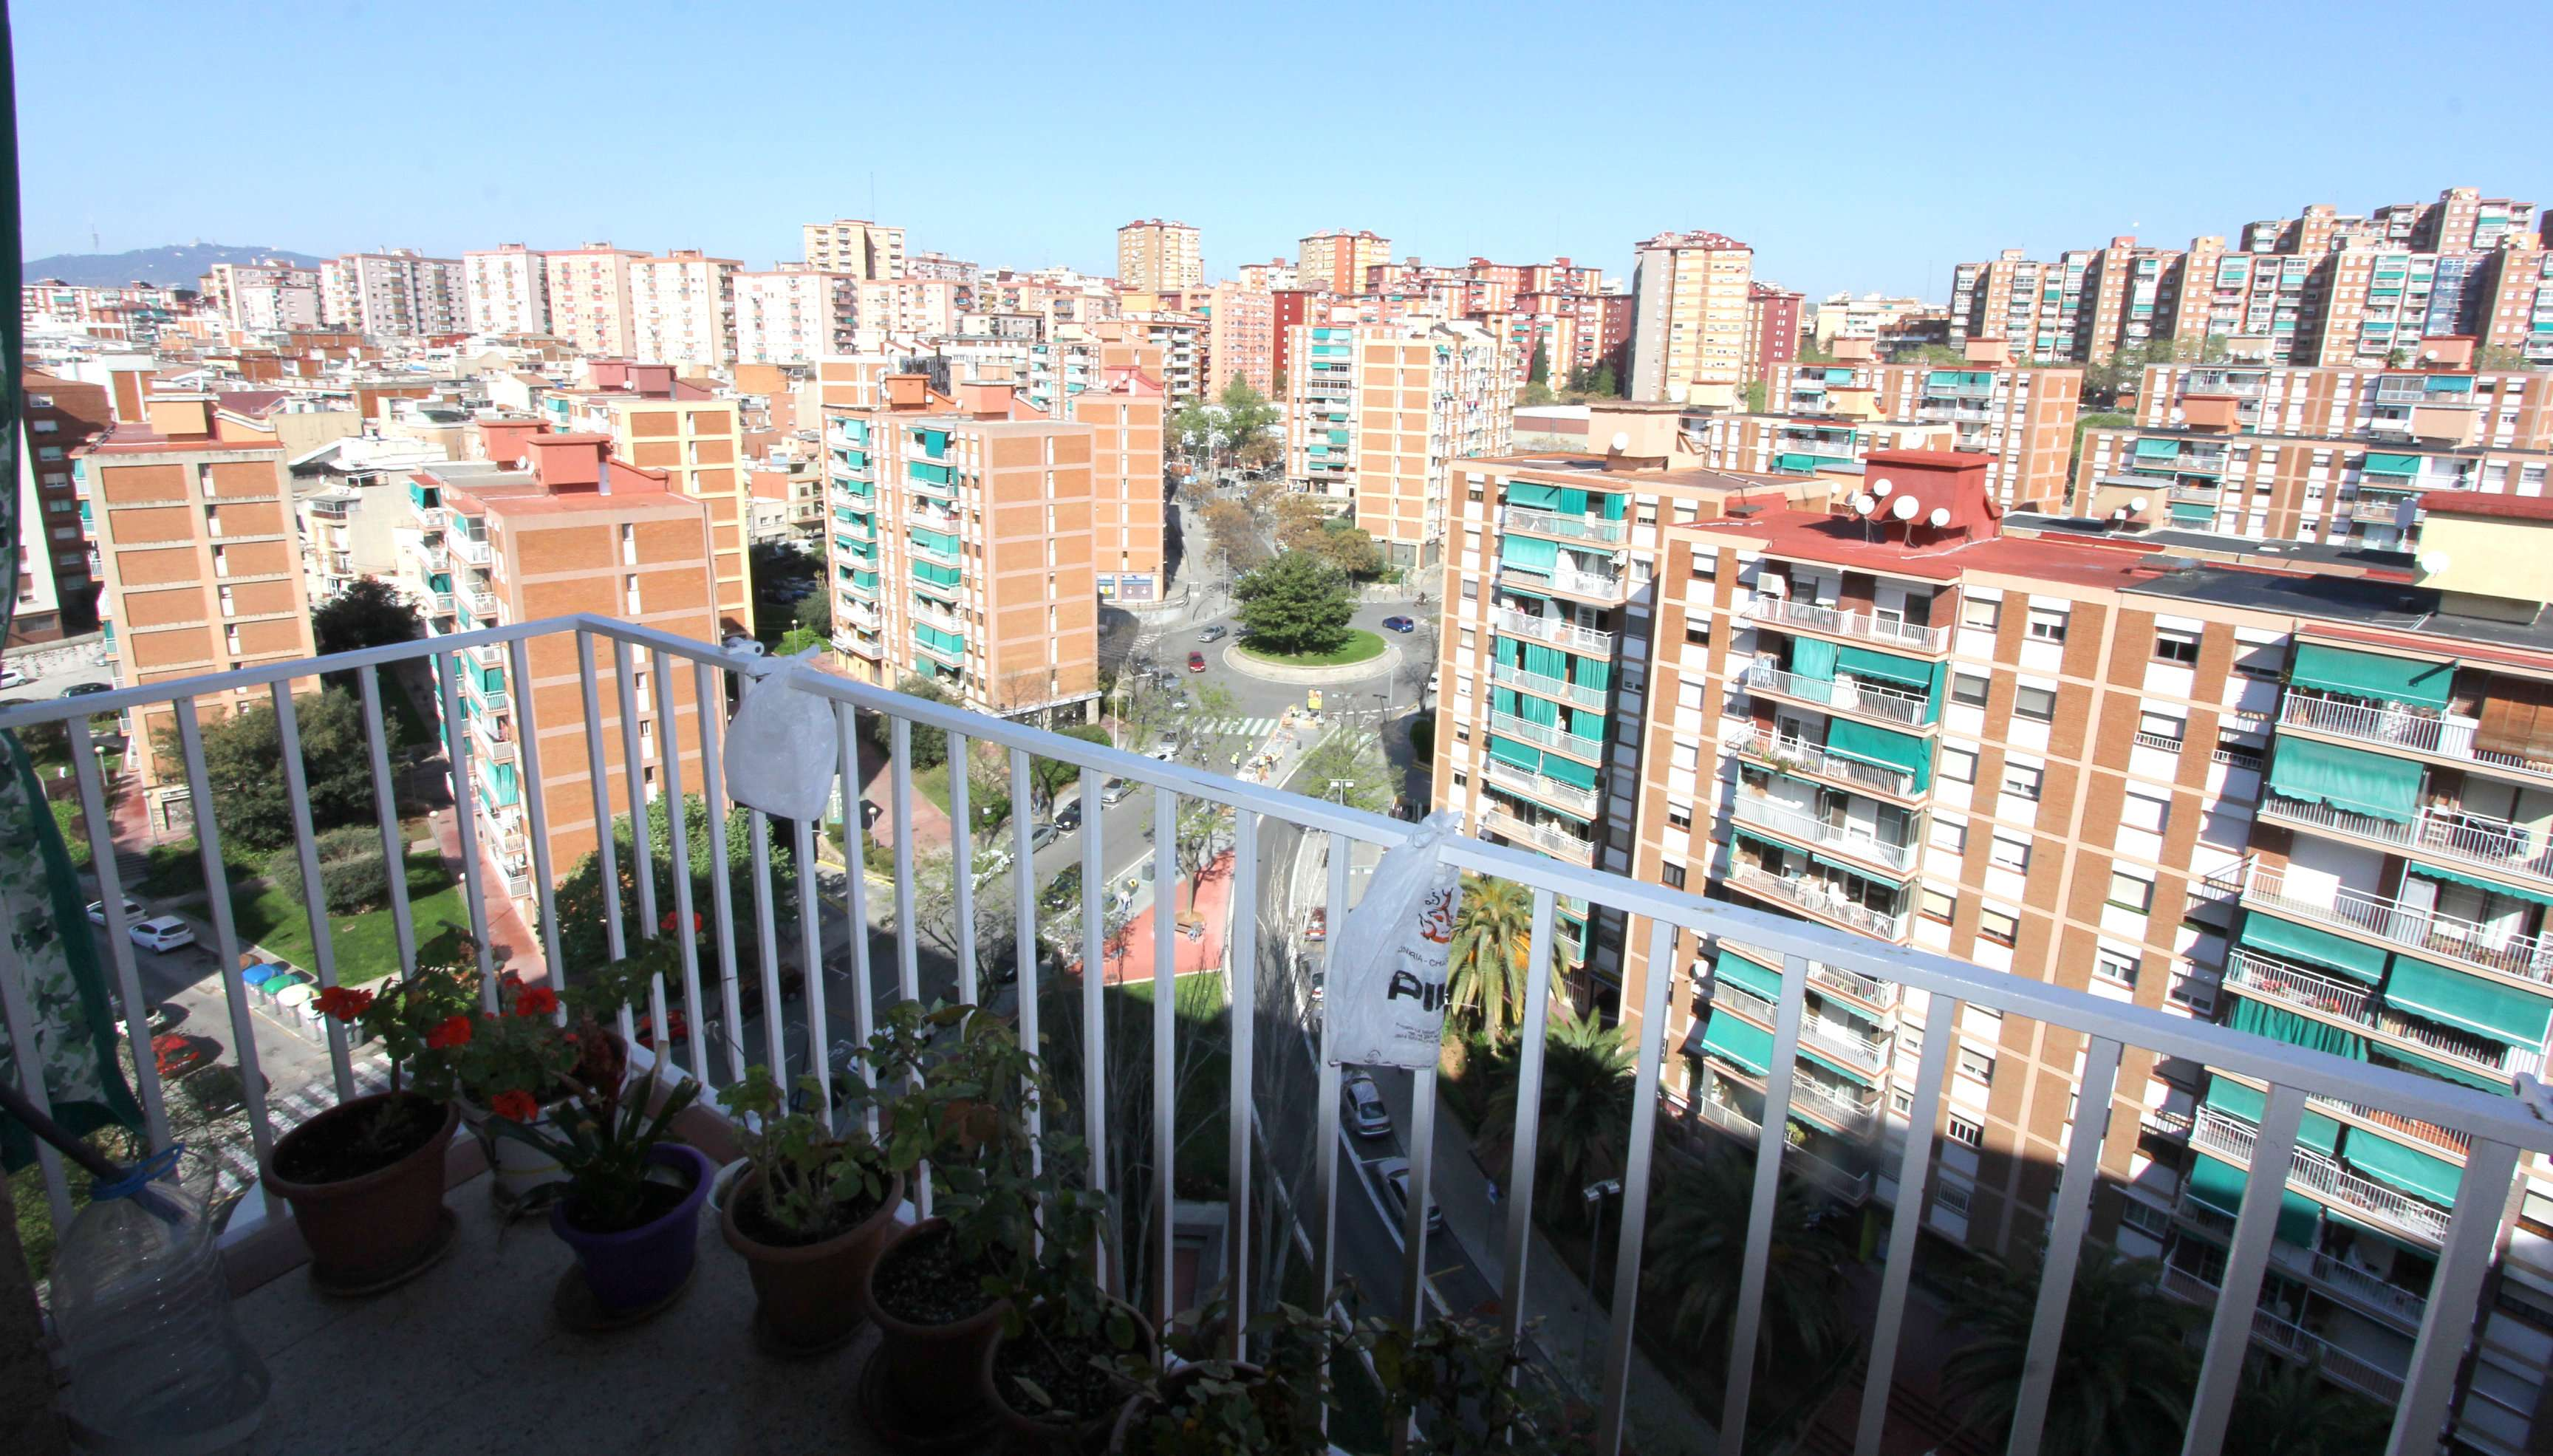 Economy apartment in Llefià, Badalona